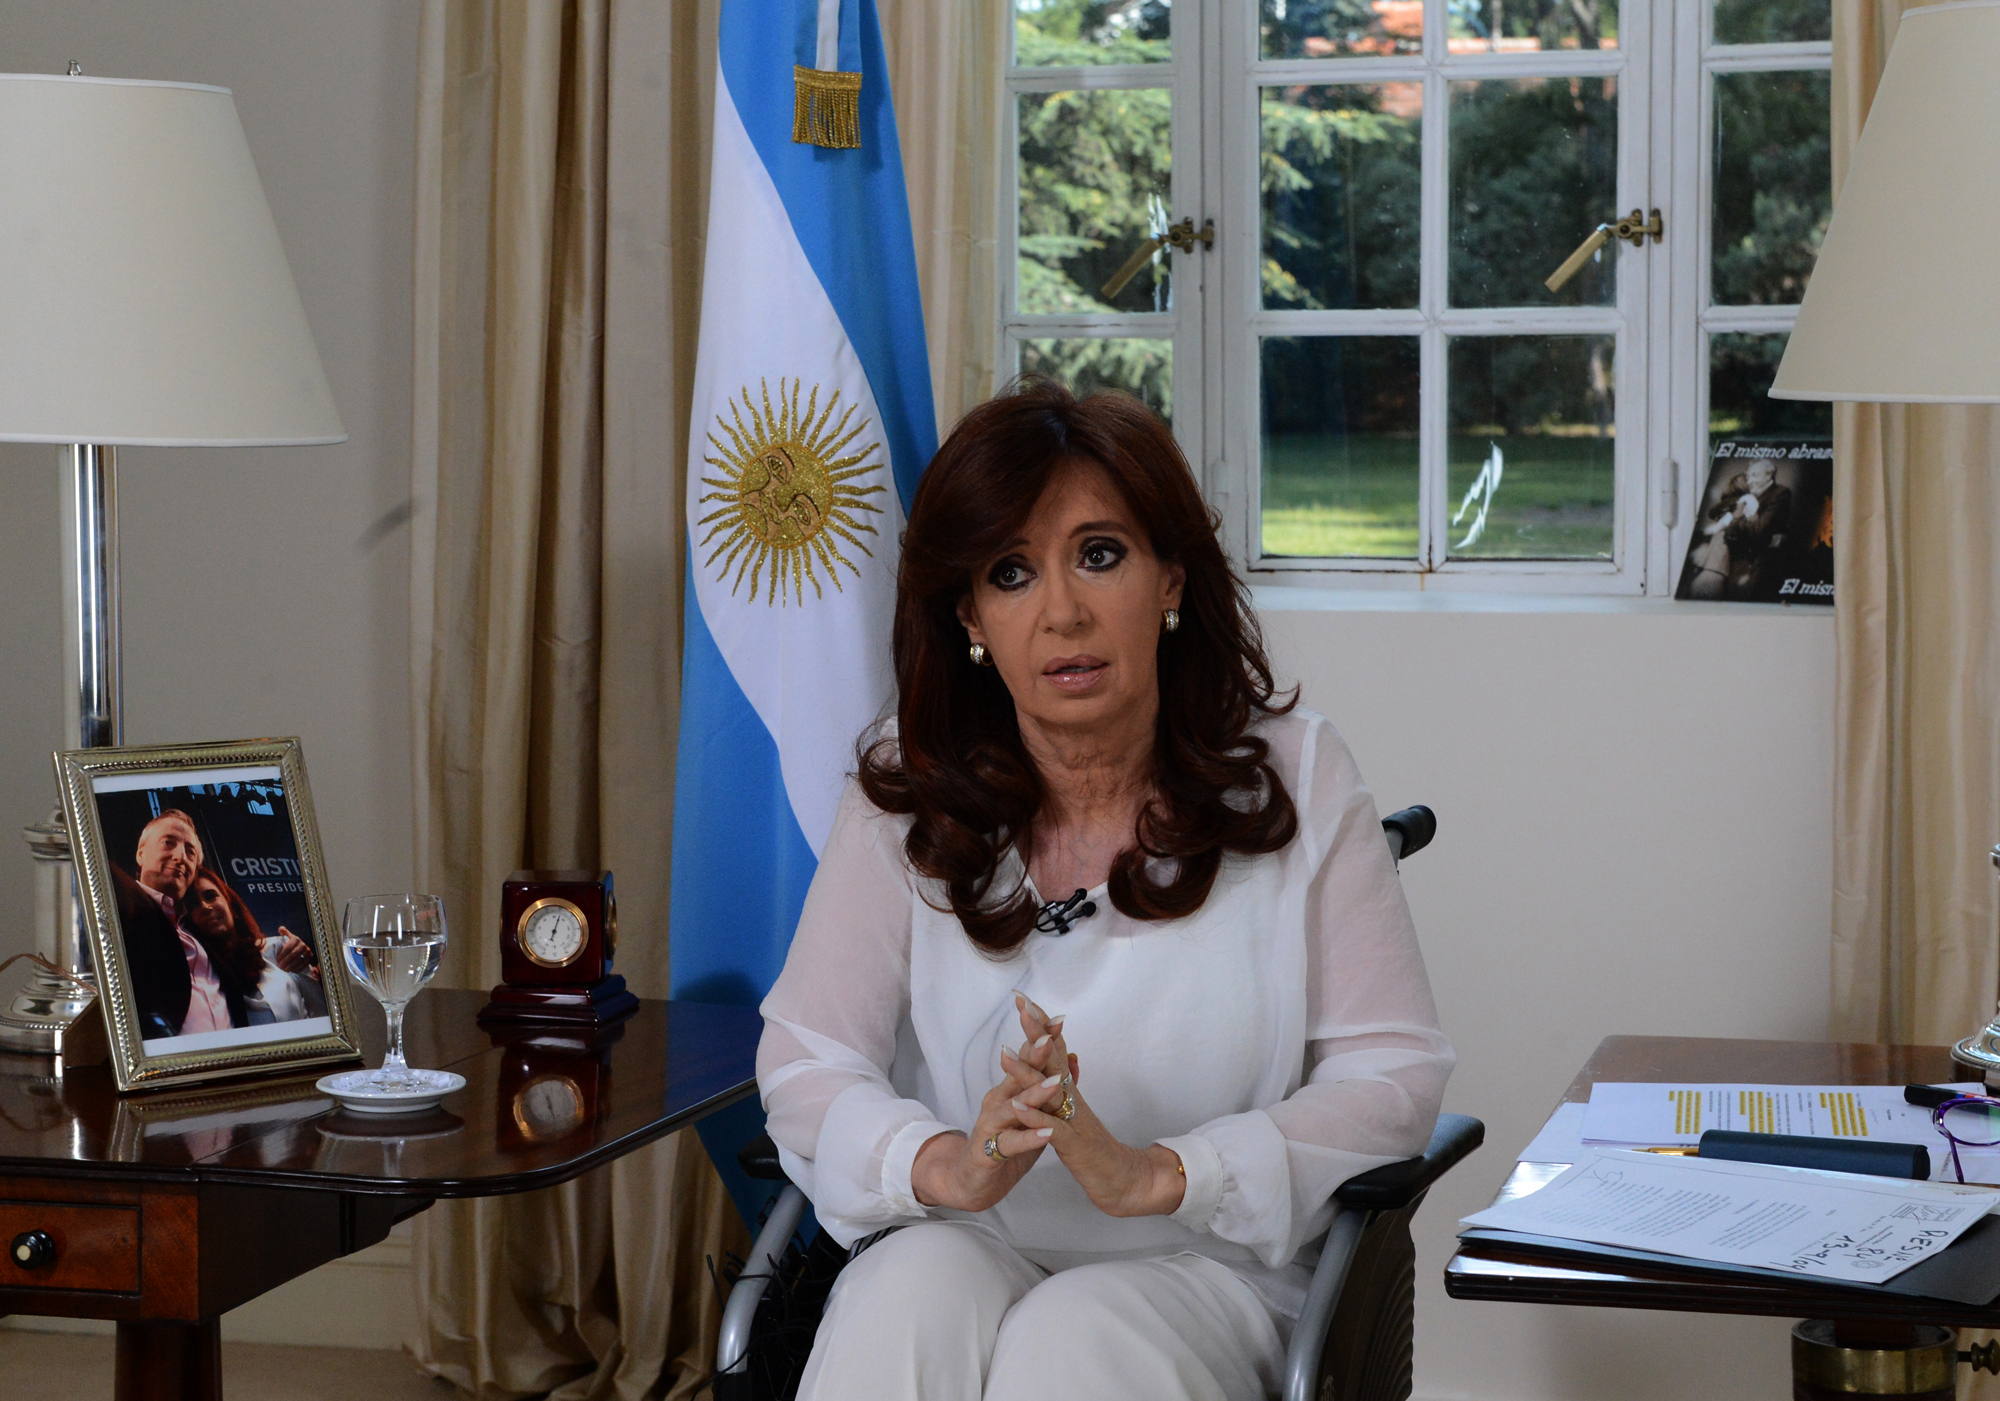 Cristina dice estar a favor del EI: